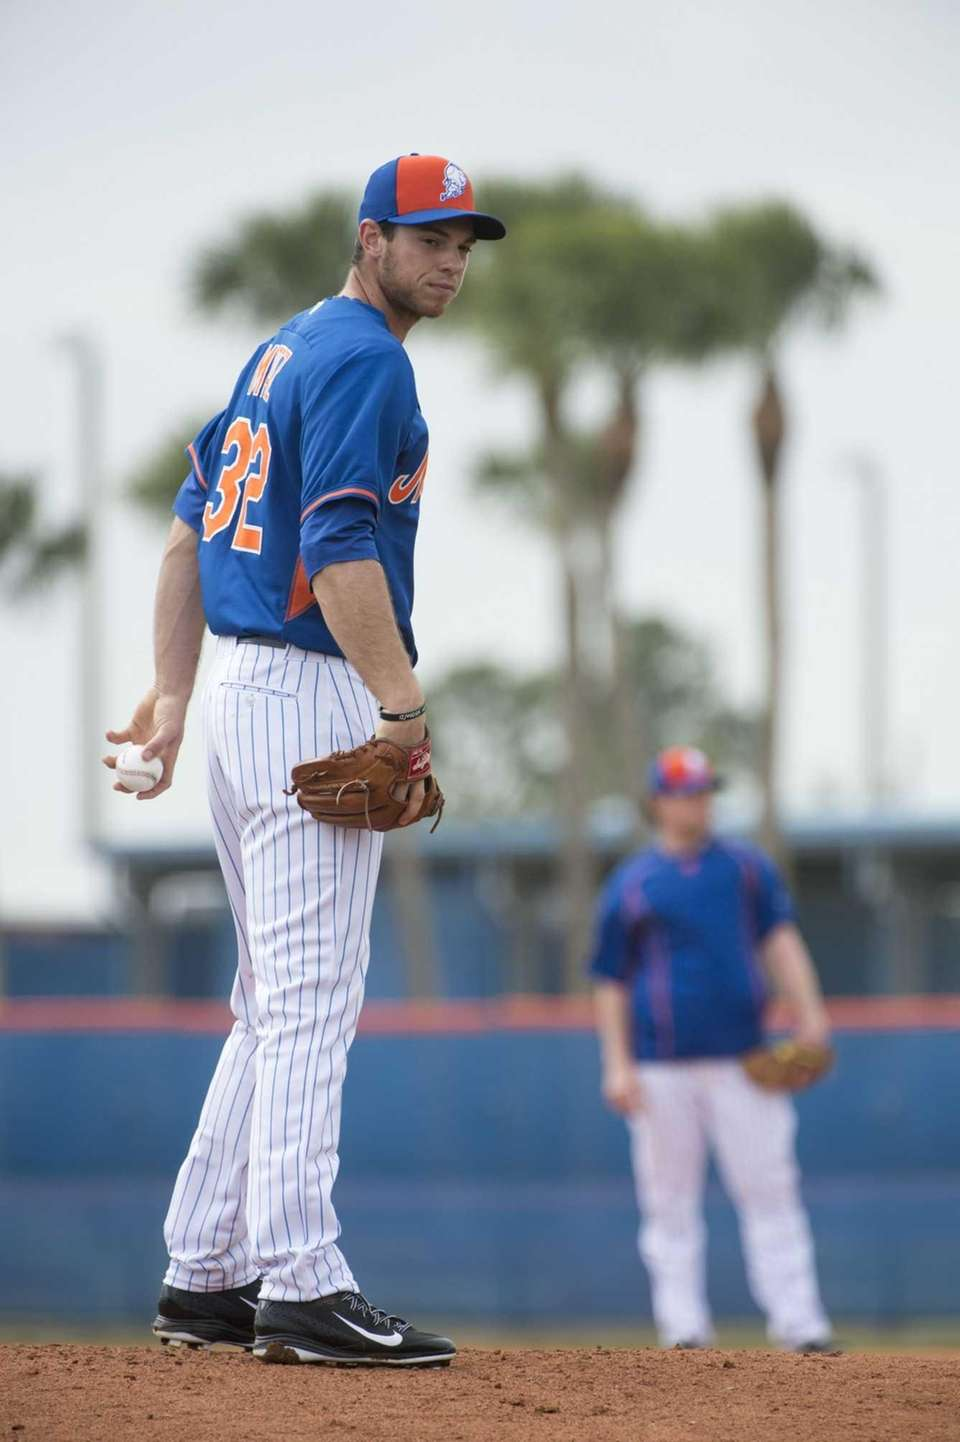 Mets pitcher Steven Matz practices pitching drills during